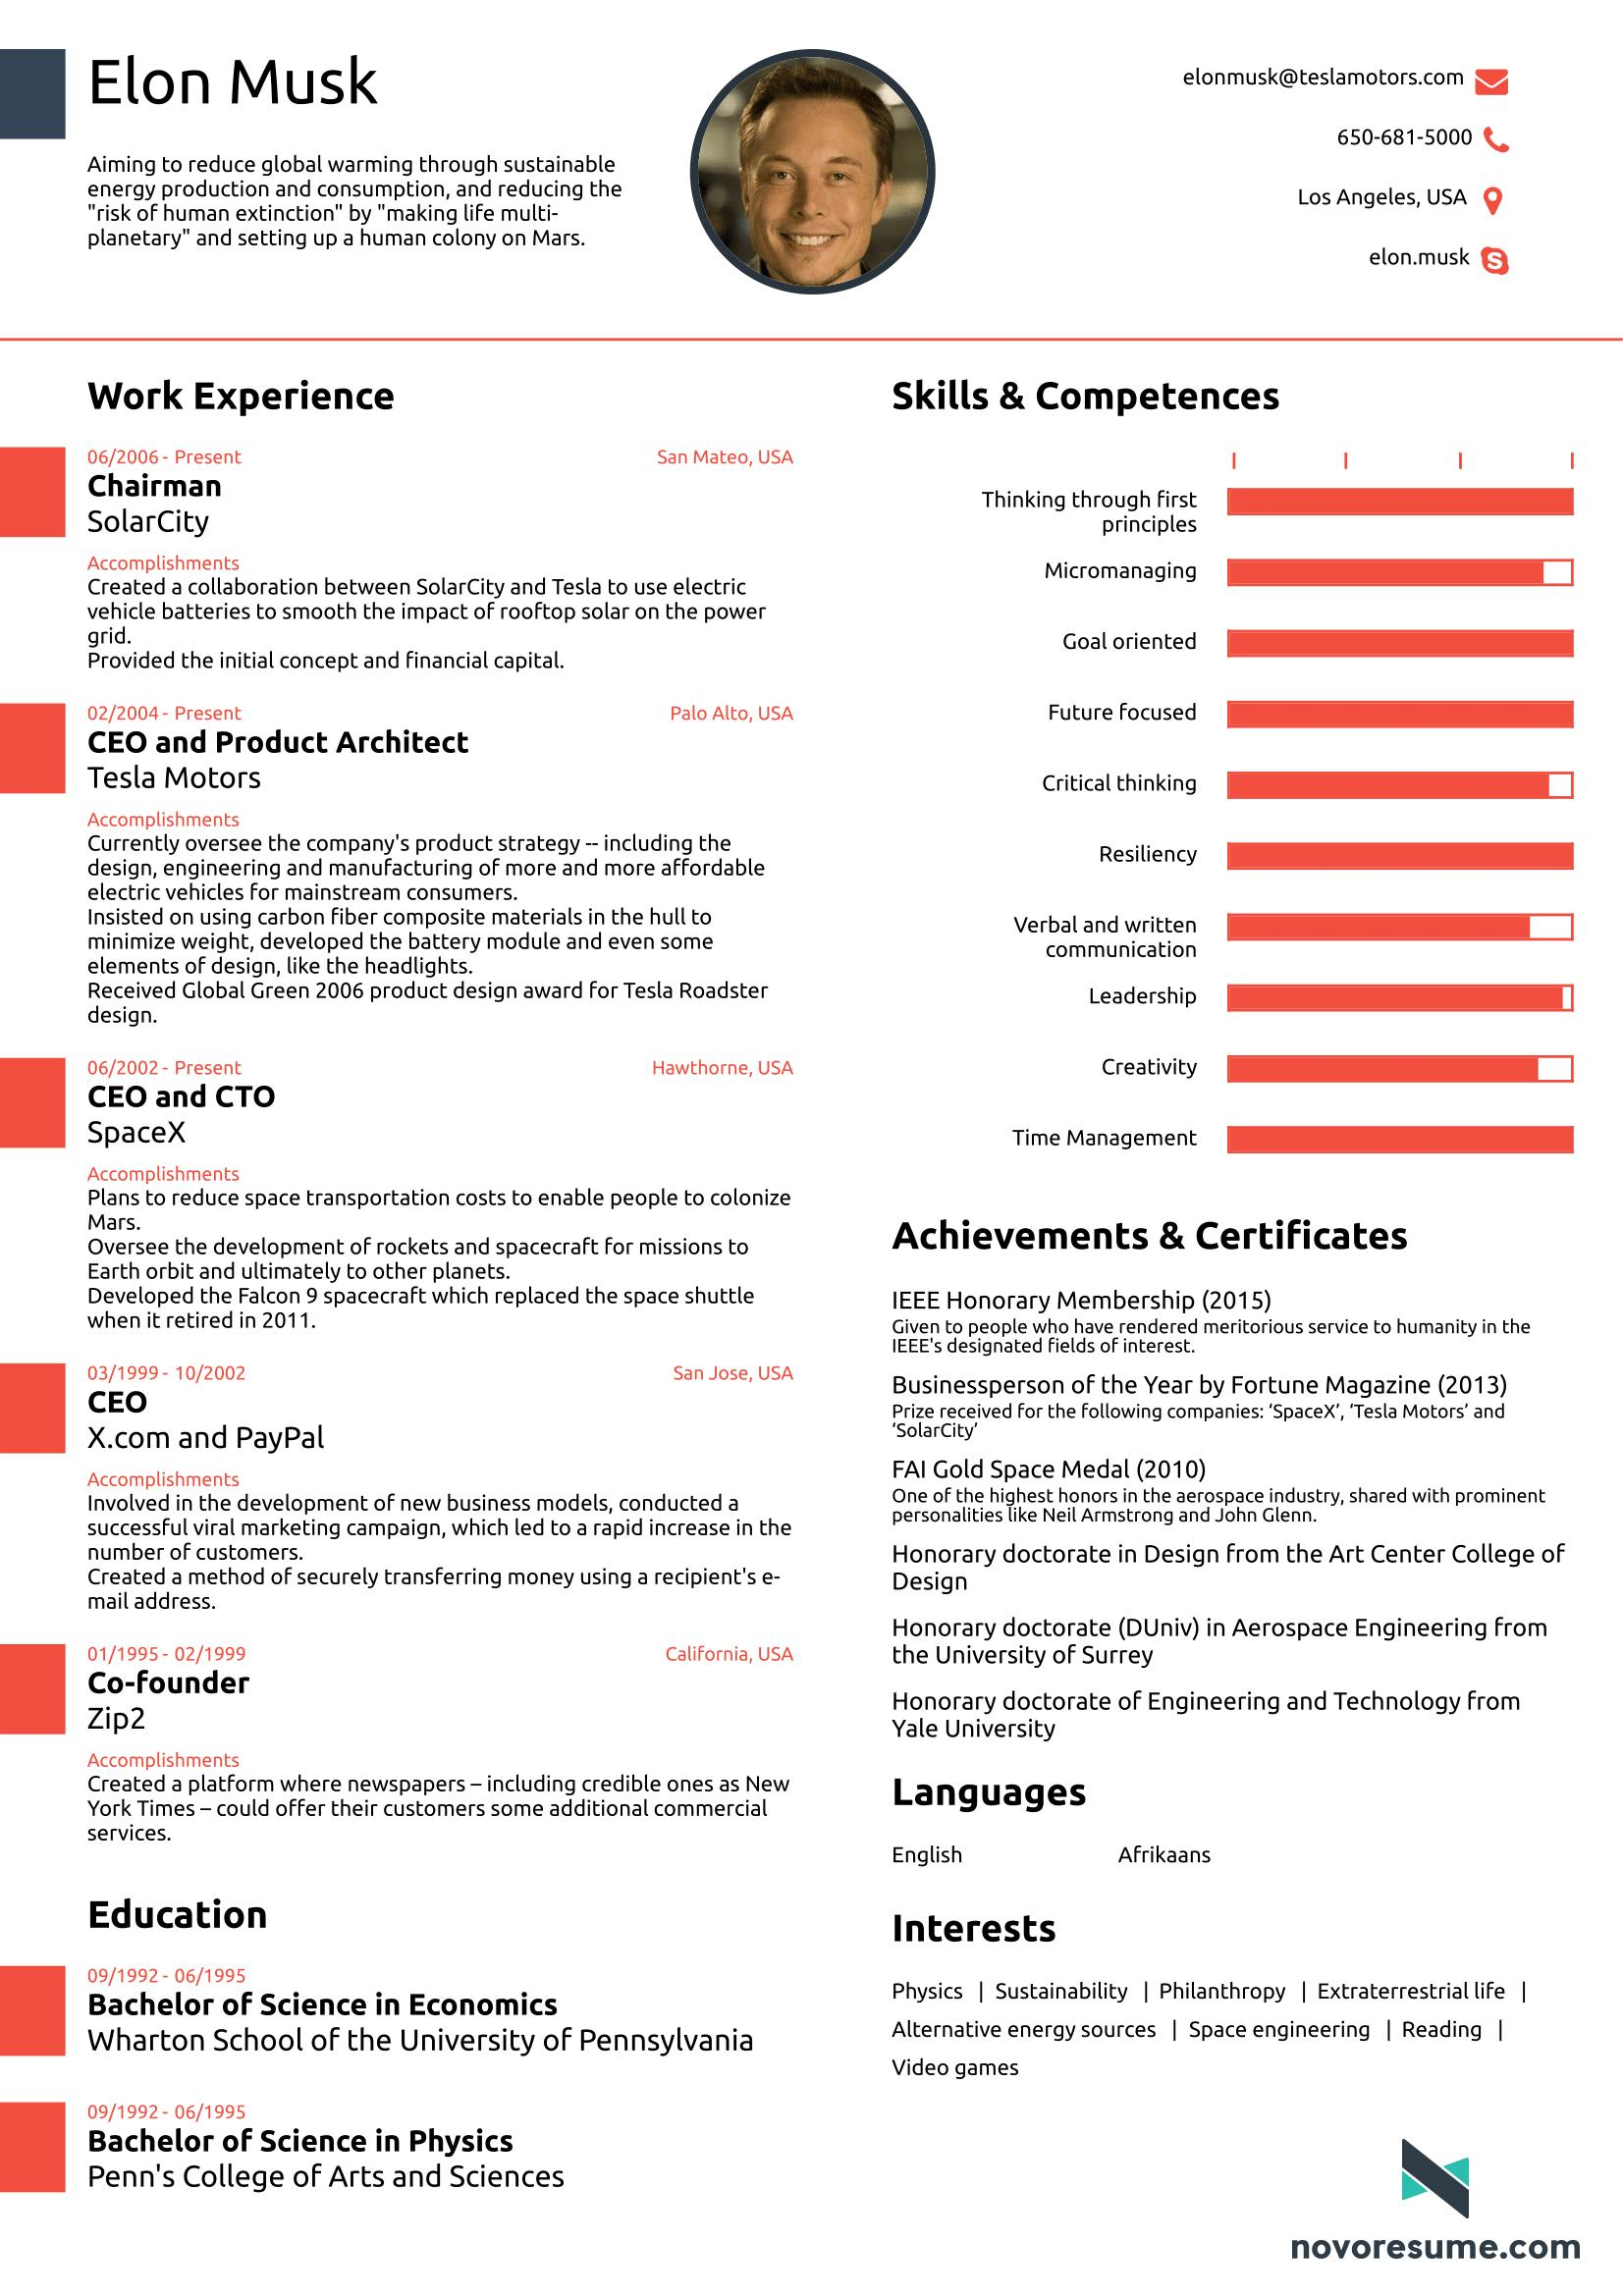 61 Excellent 1 Page Resume for Pictures